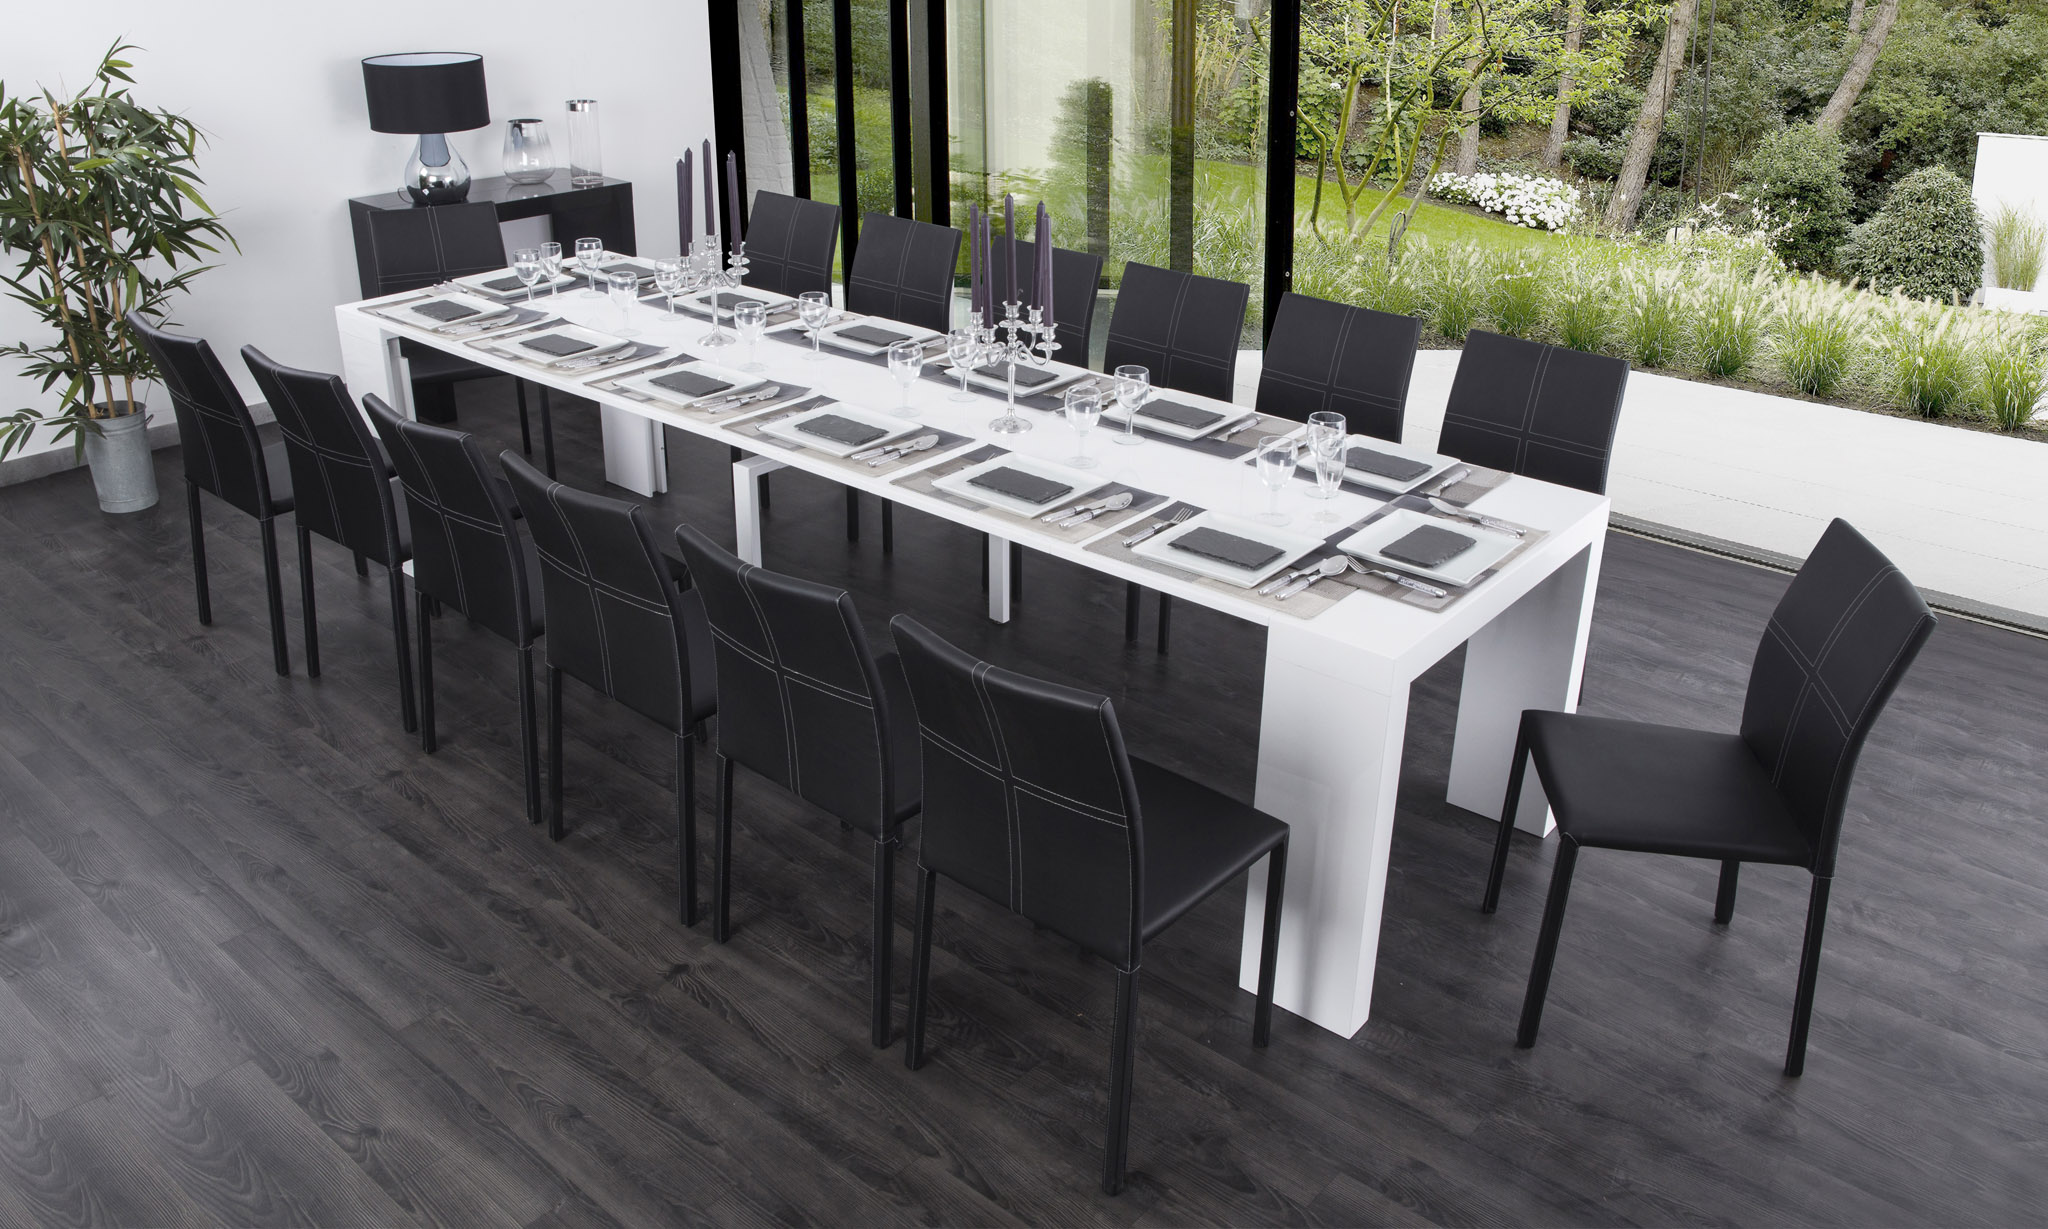 Console extensible d s 149 99 groupon for Table salle a manger extensible 16 personnes